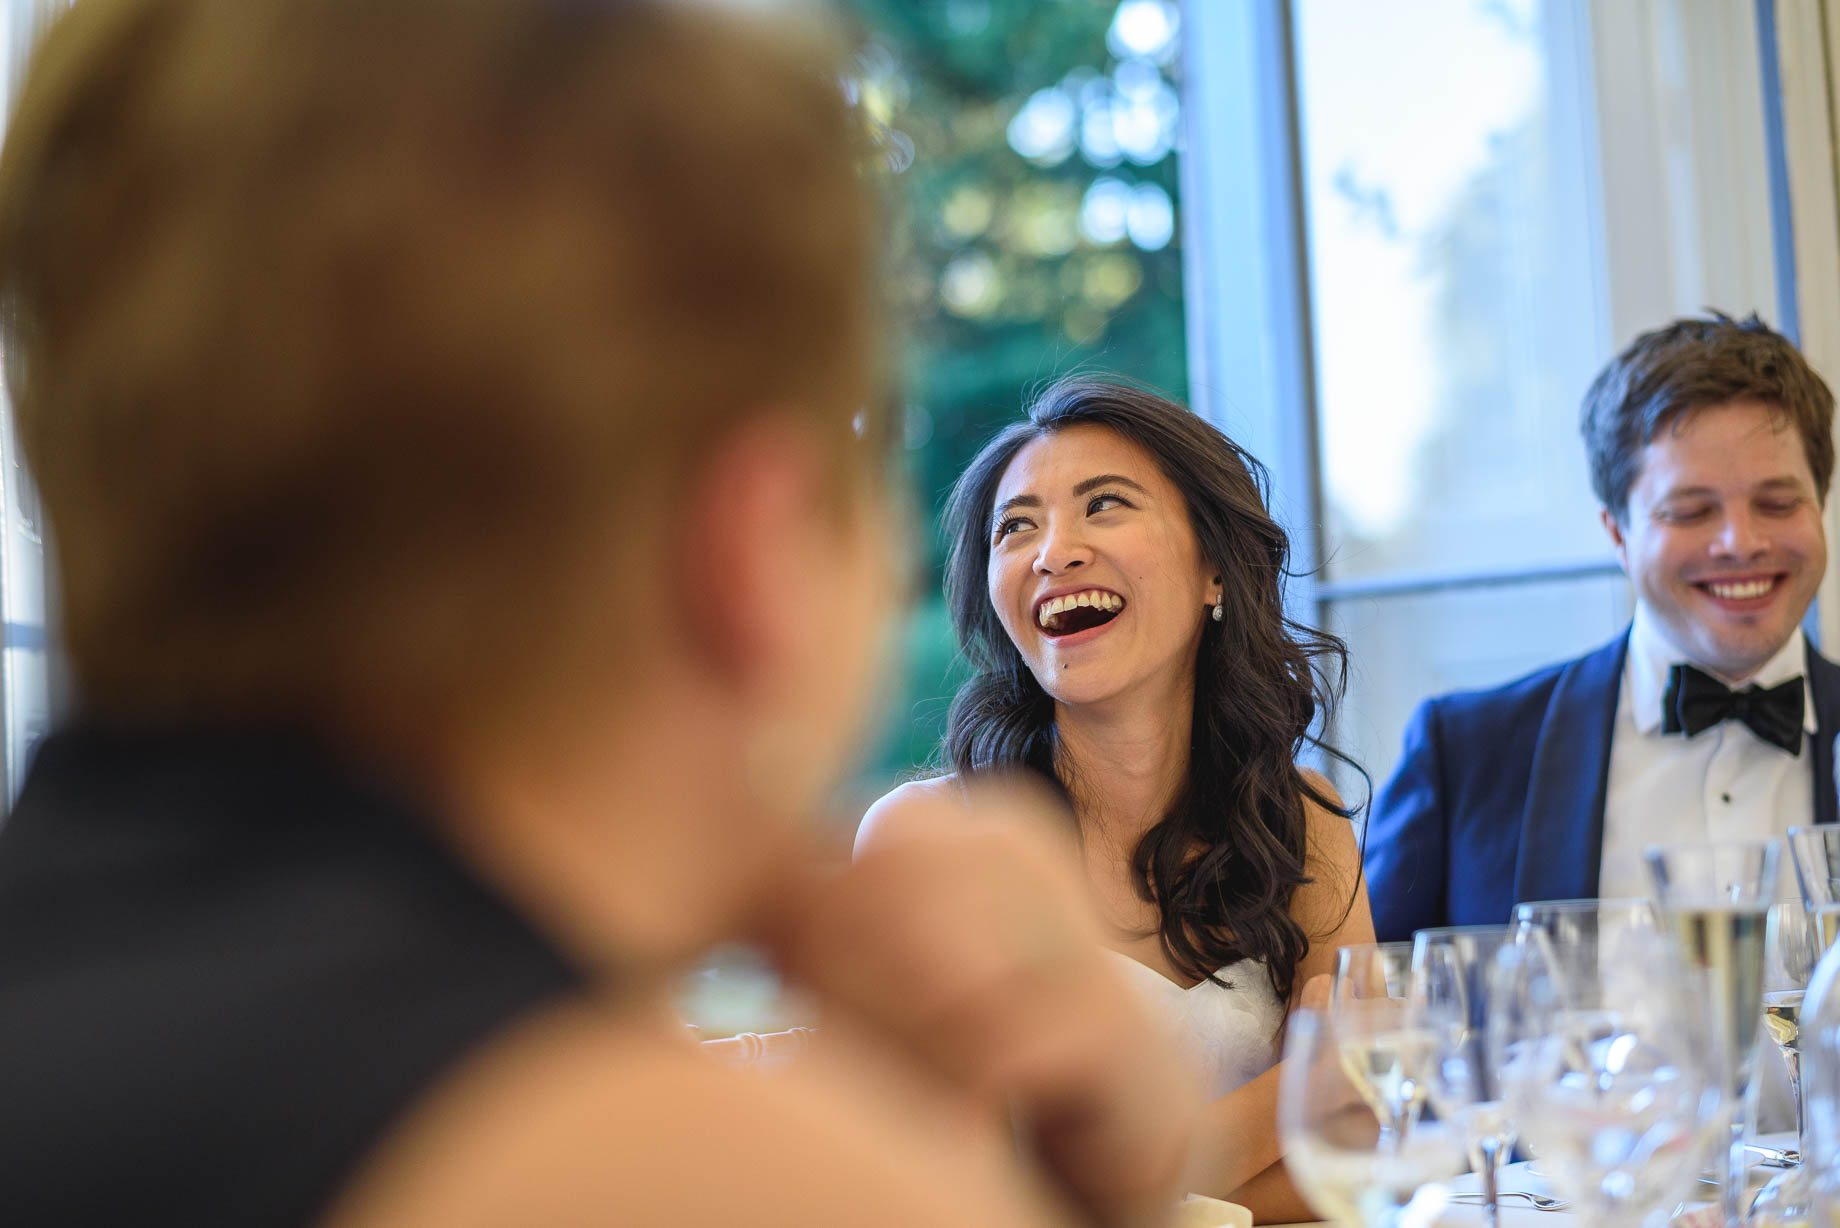 Kew Gardens wedding photography - Guy Collier Photography - Gloria and Frederik (122 of 173)